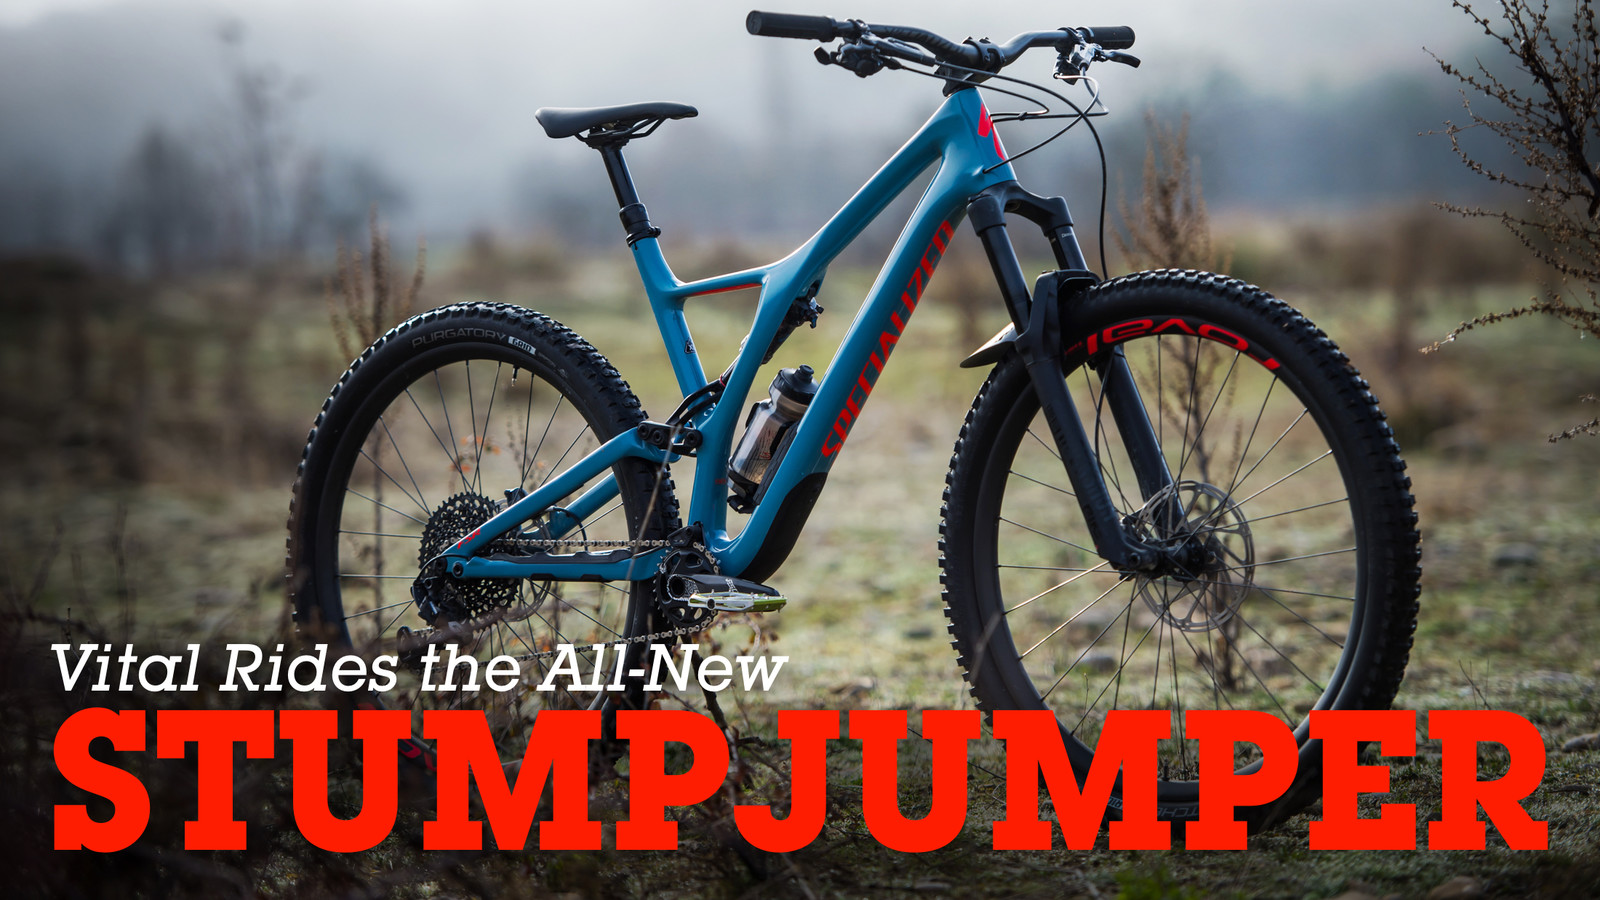 Vital Rides the All-New 2018 Specialized Stumpjumper - Mountain